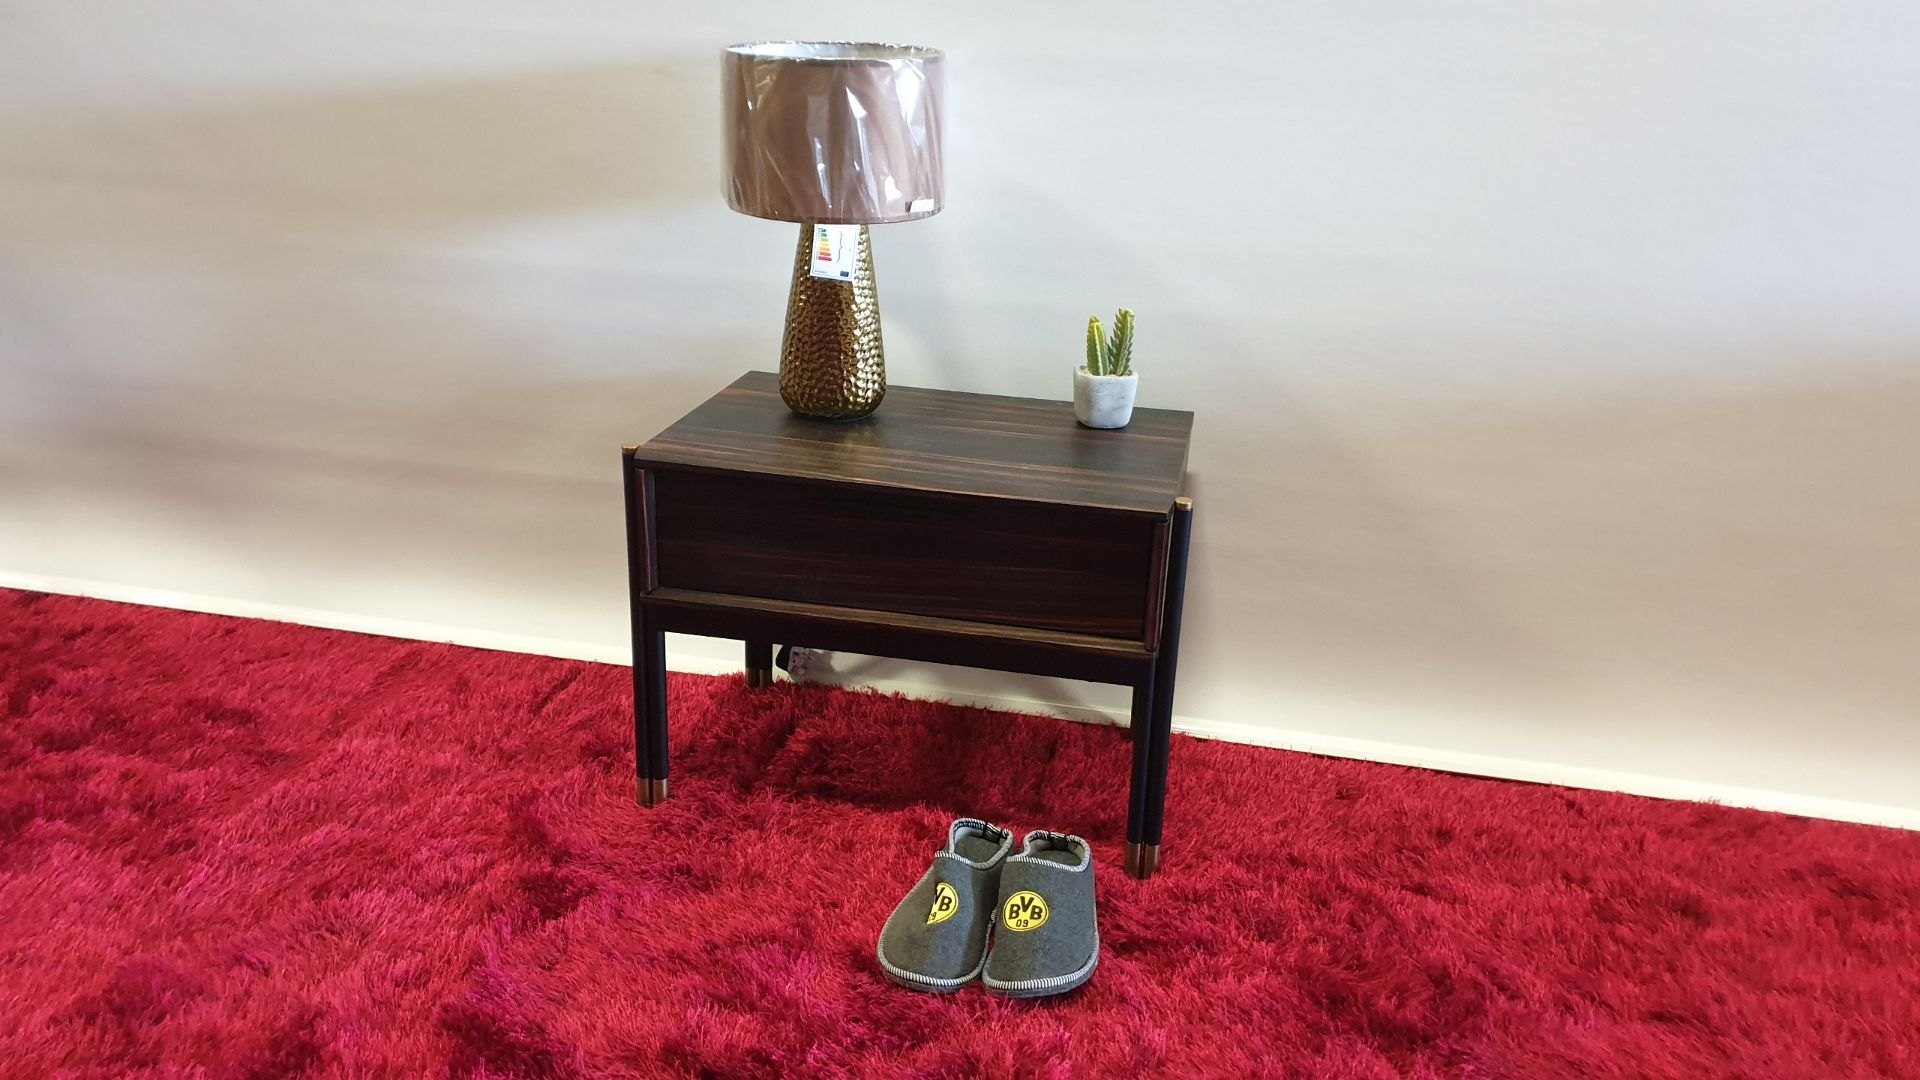 Lot 18 - BRAND NEW WOODEN AND ROSE GOLD SOFT CLOSE BED SIDE TABLE 637 X 395 X 480MM RRP £239